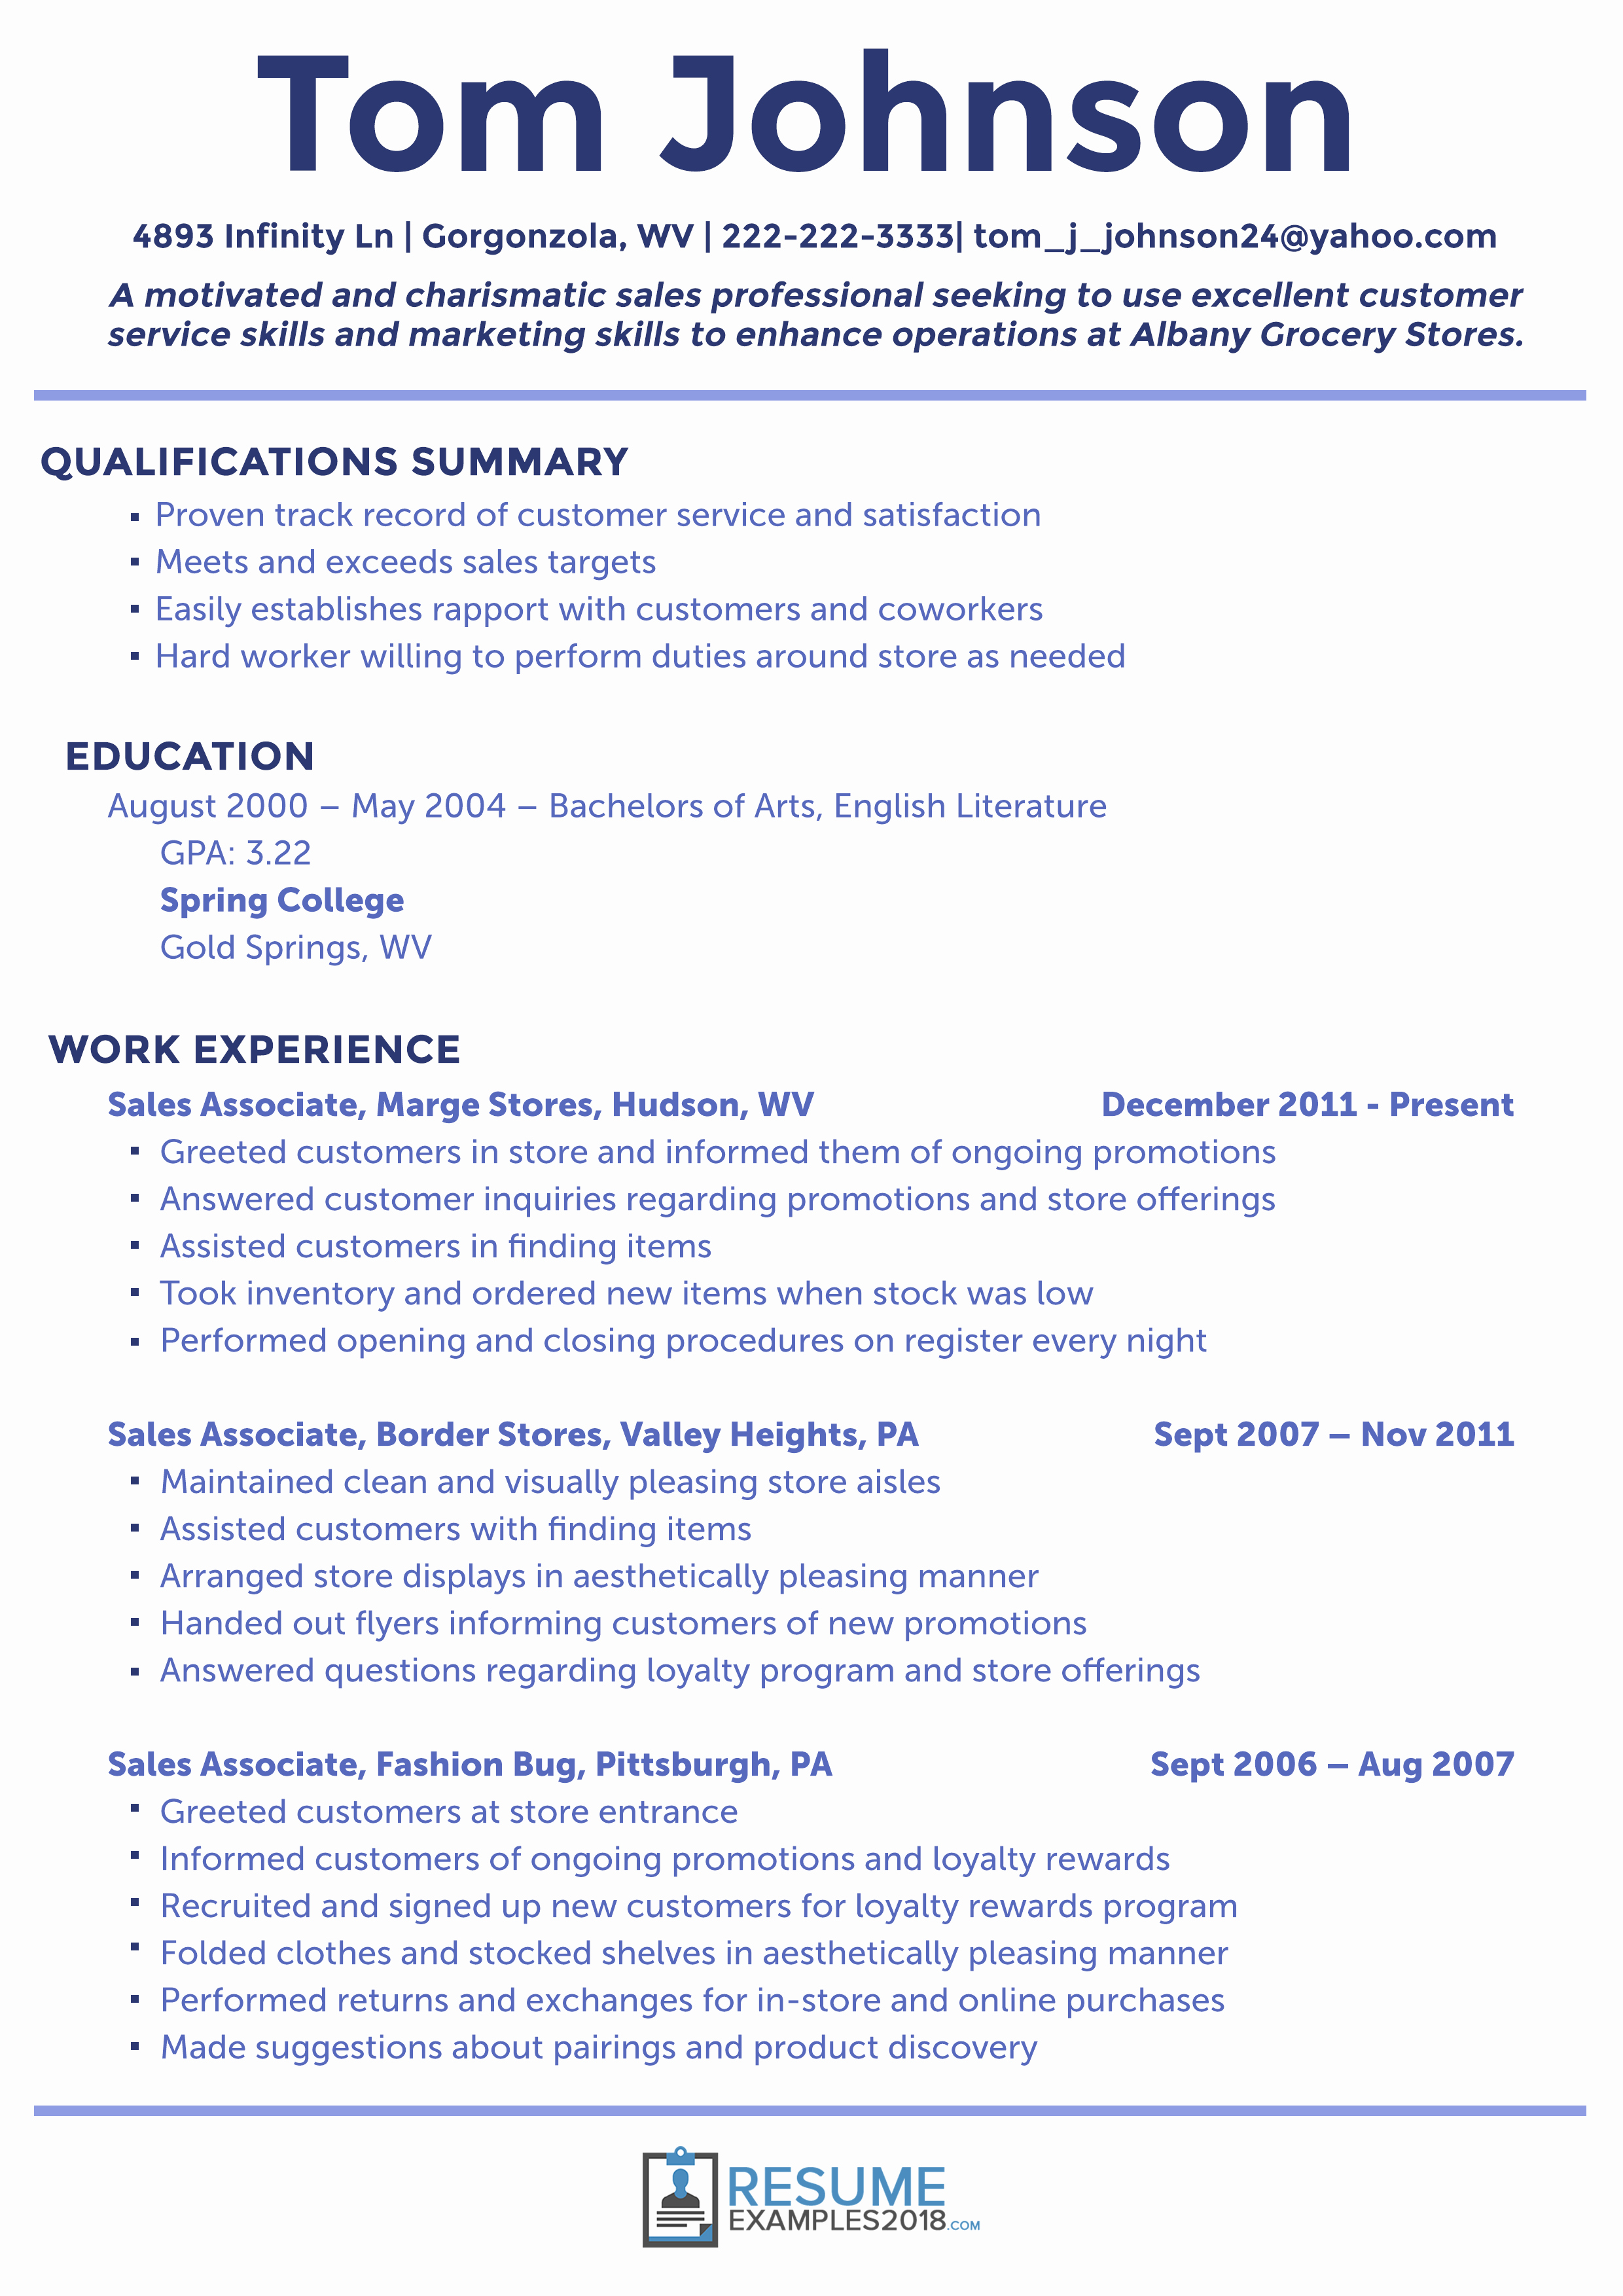 Free Functional Resume Template 2018 Unique What are the Best Sales Resume Examples 2019